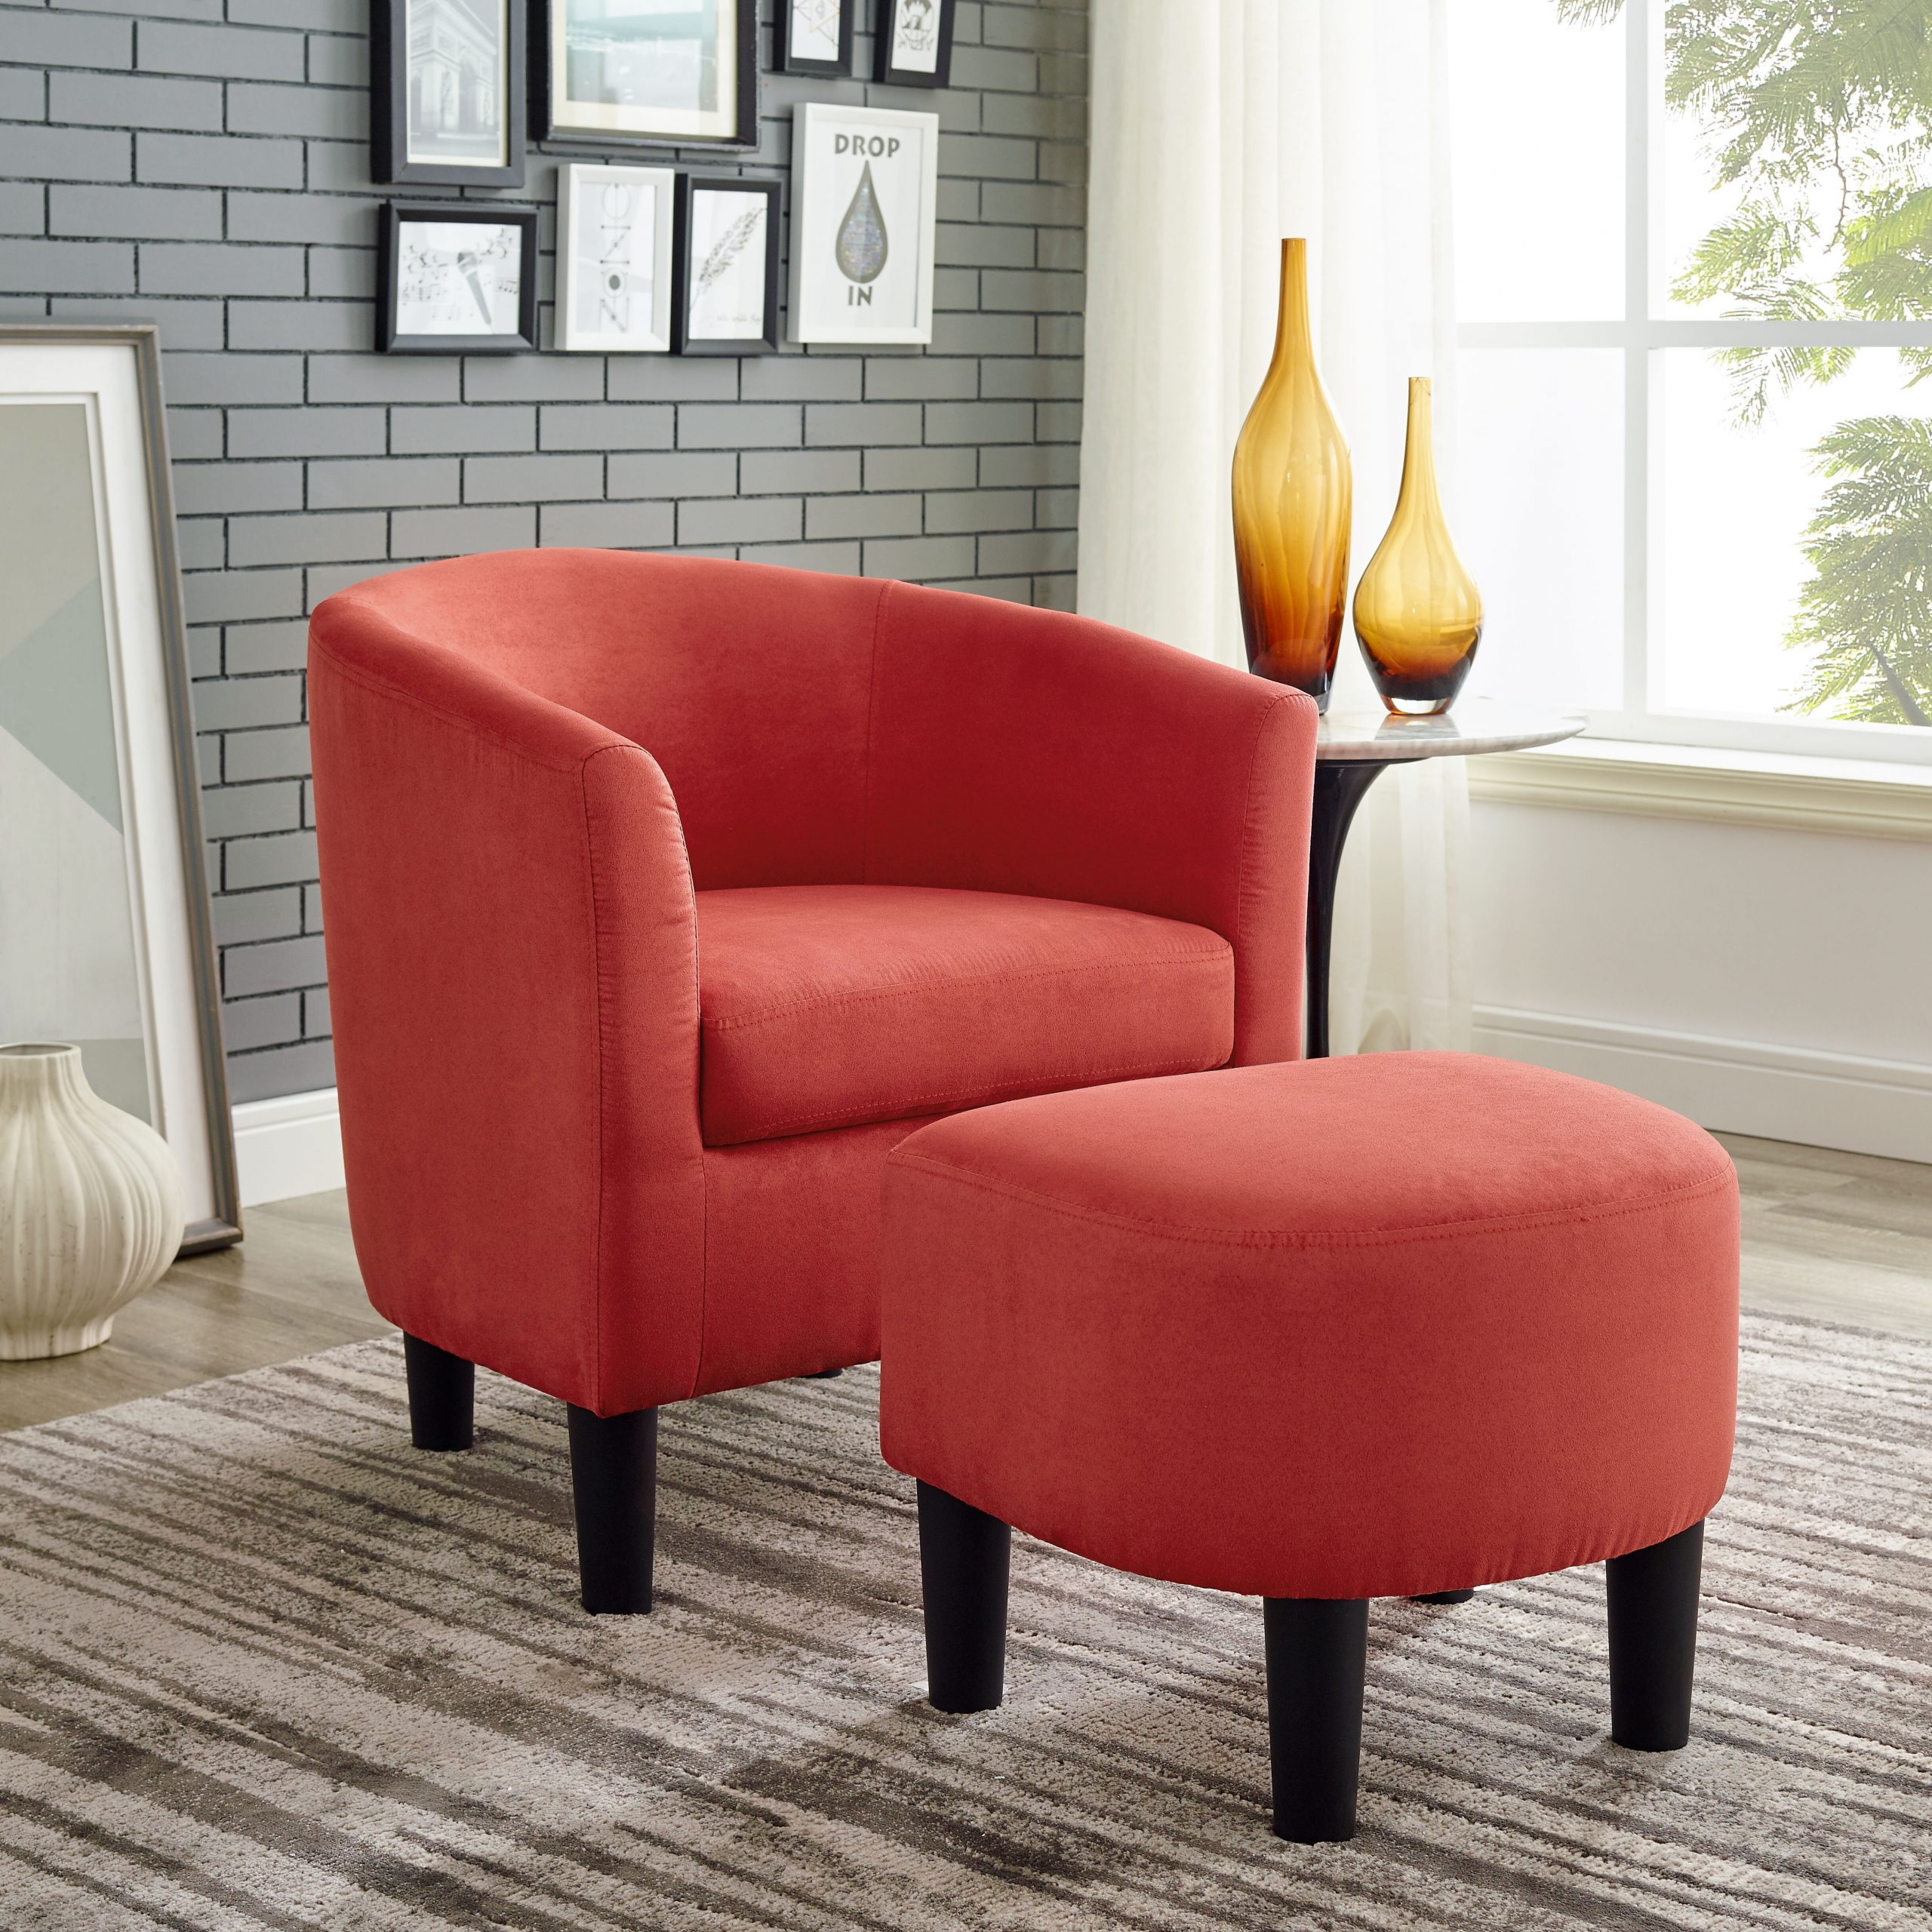 Orange & White Accent Chairs You'Ll Love In 2021 | Wayfair In Chaithra Barrel Chair And Ottoman Sets (View 10 of 15)